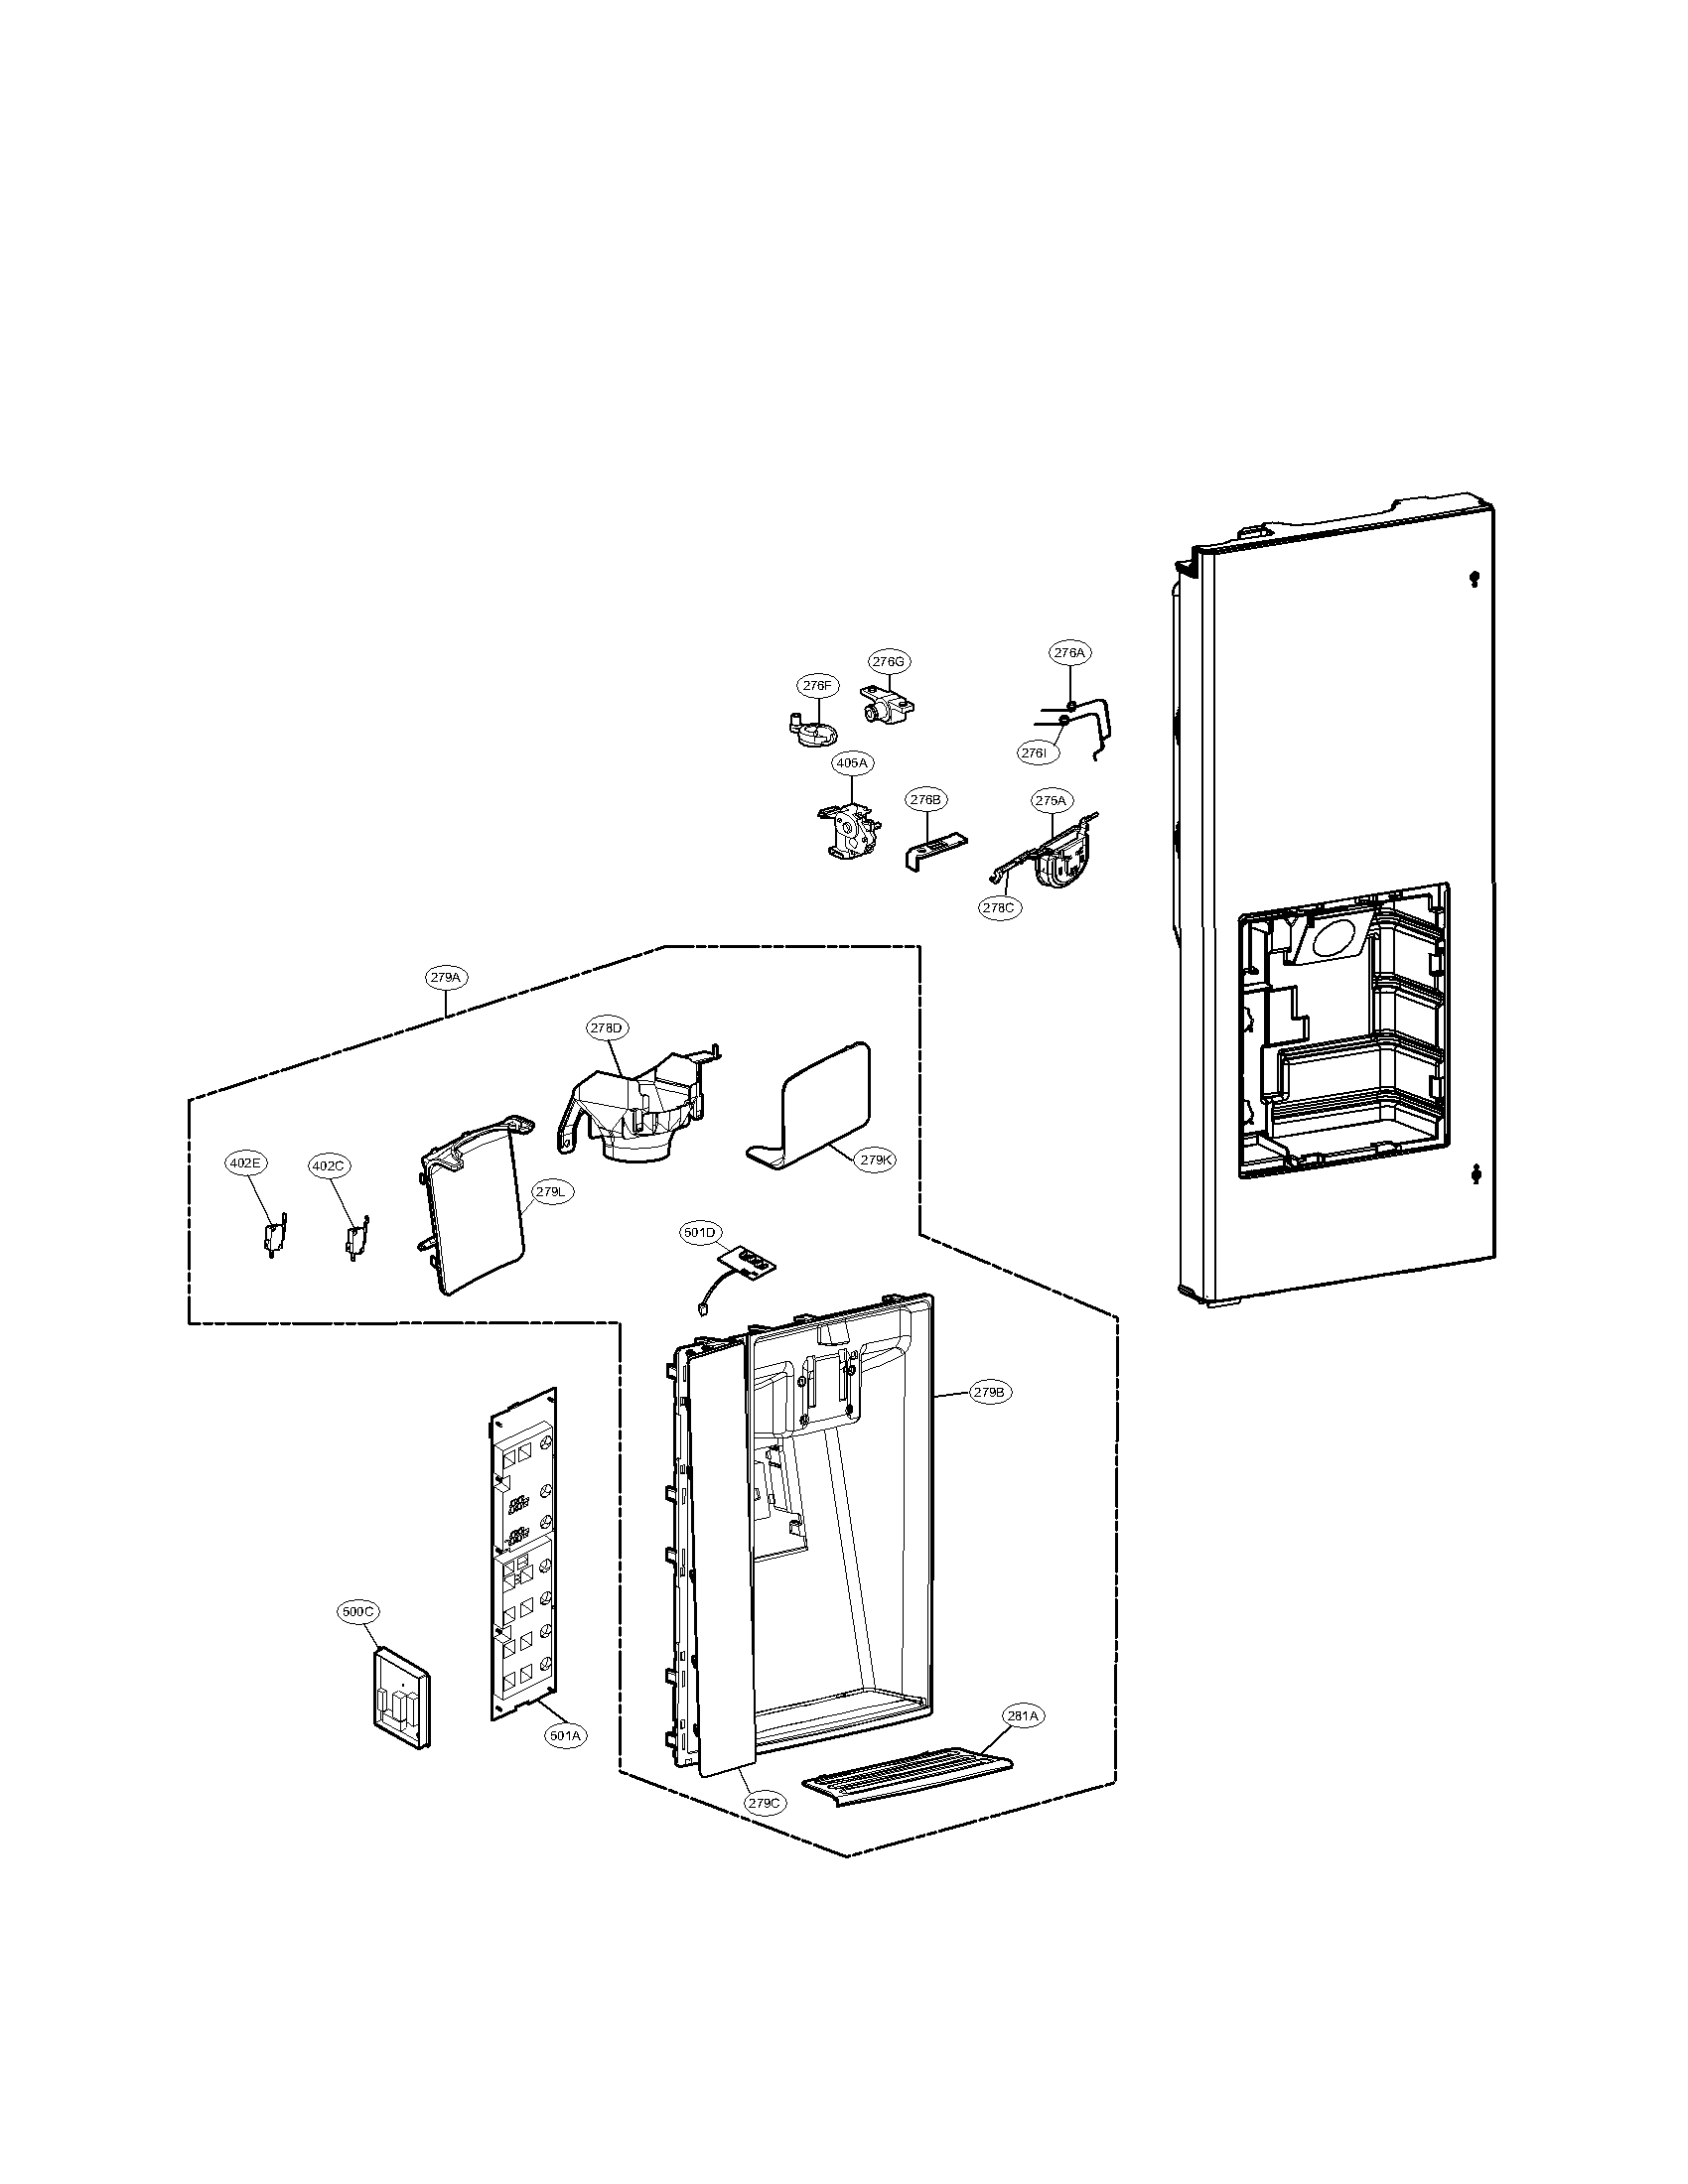 Lg model LFX31925ST bottom-mount refrigerator genuine parts